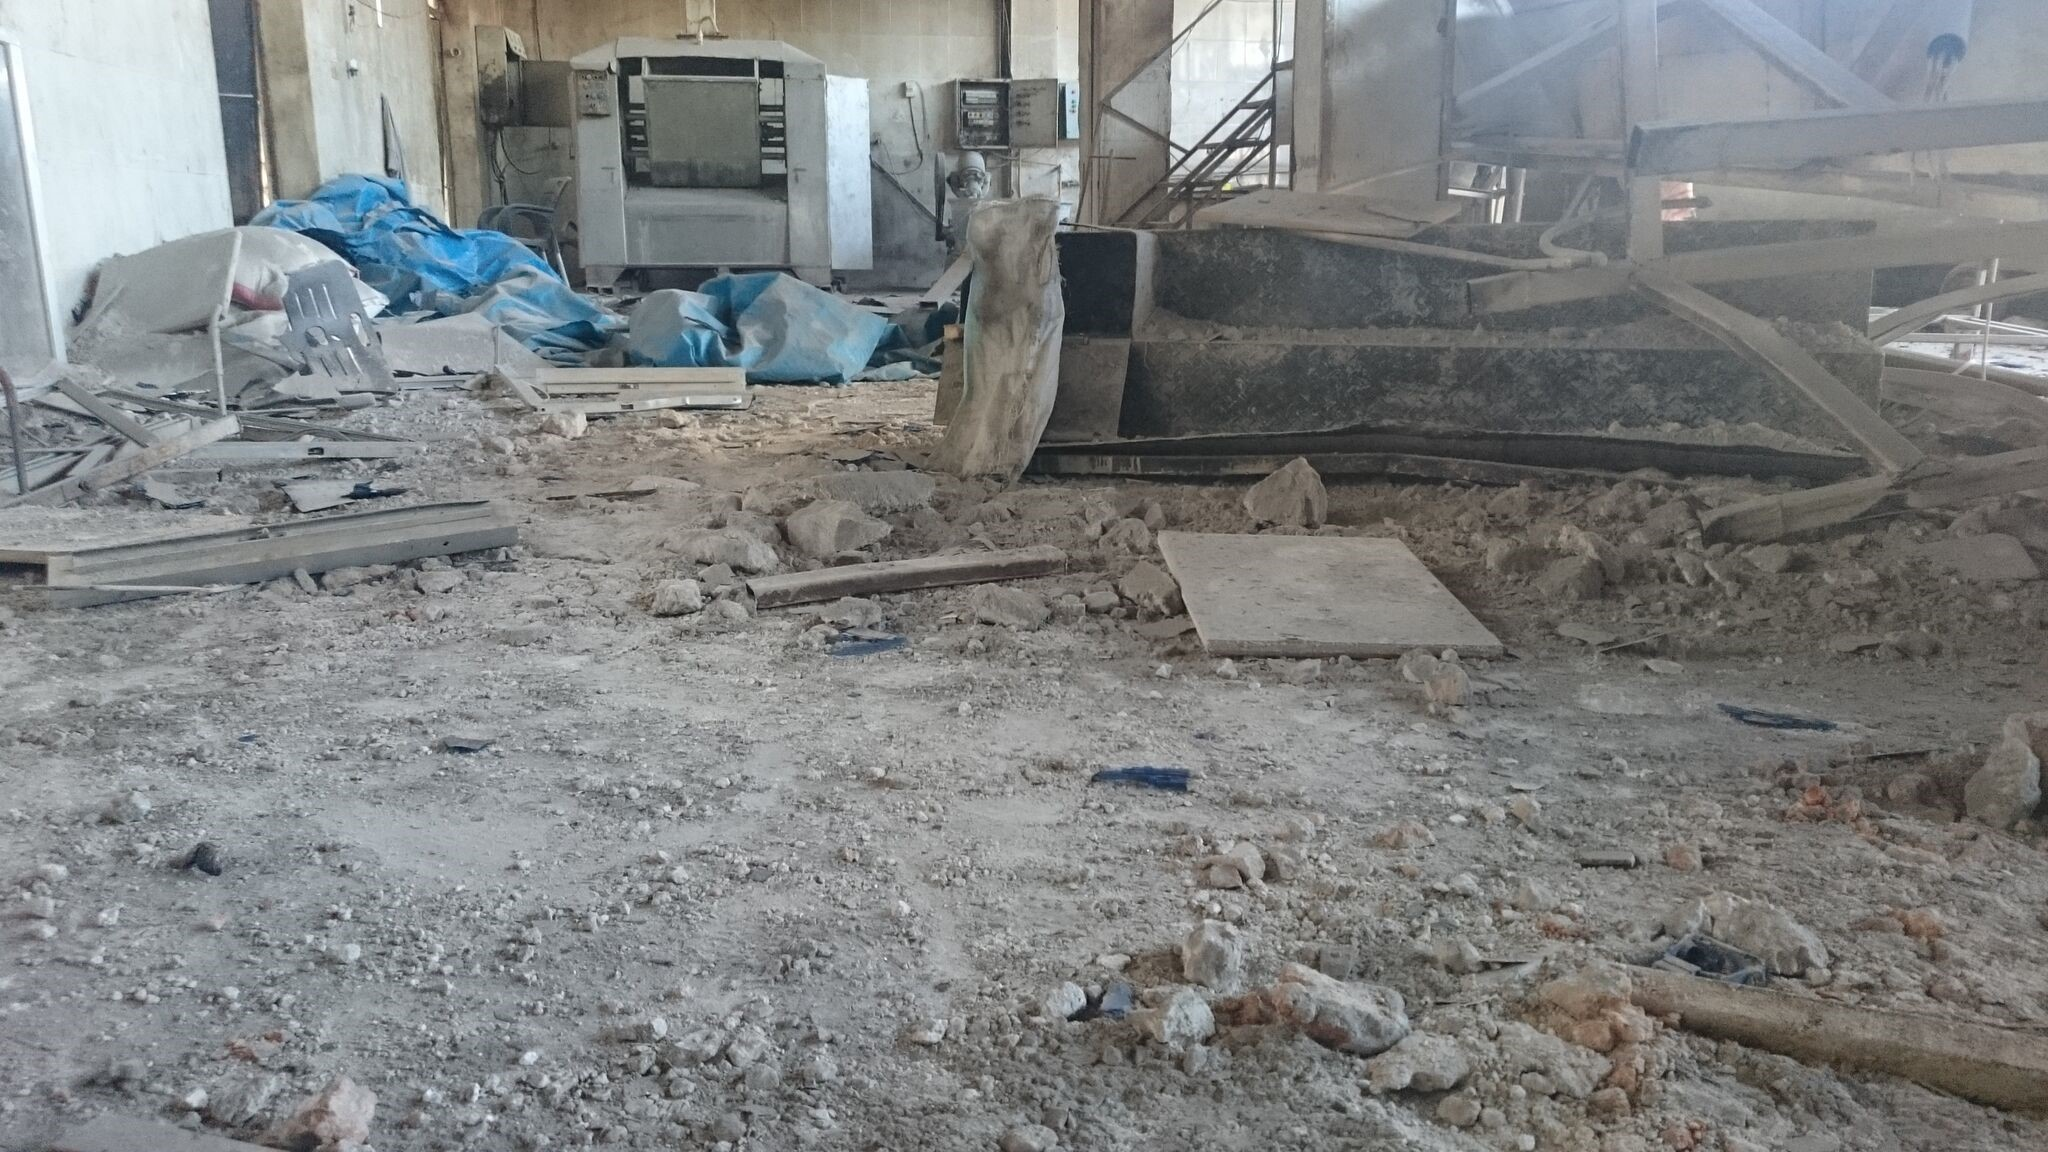 Airstrike destroys Idlib bread oven serving 150,000 people, with no money to rebuild